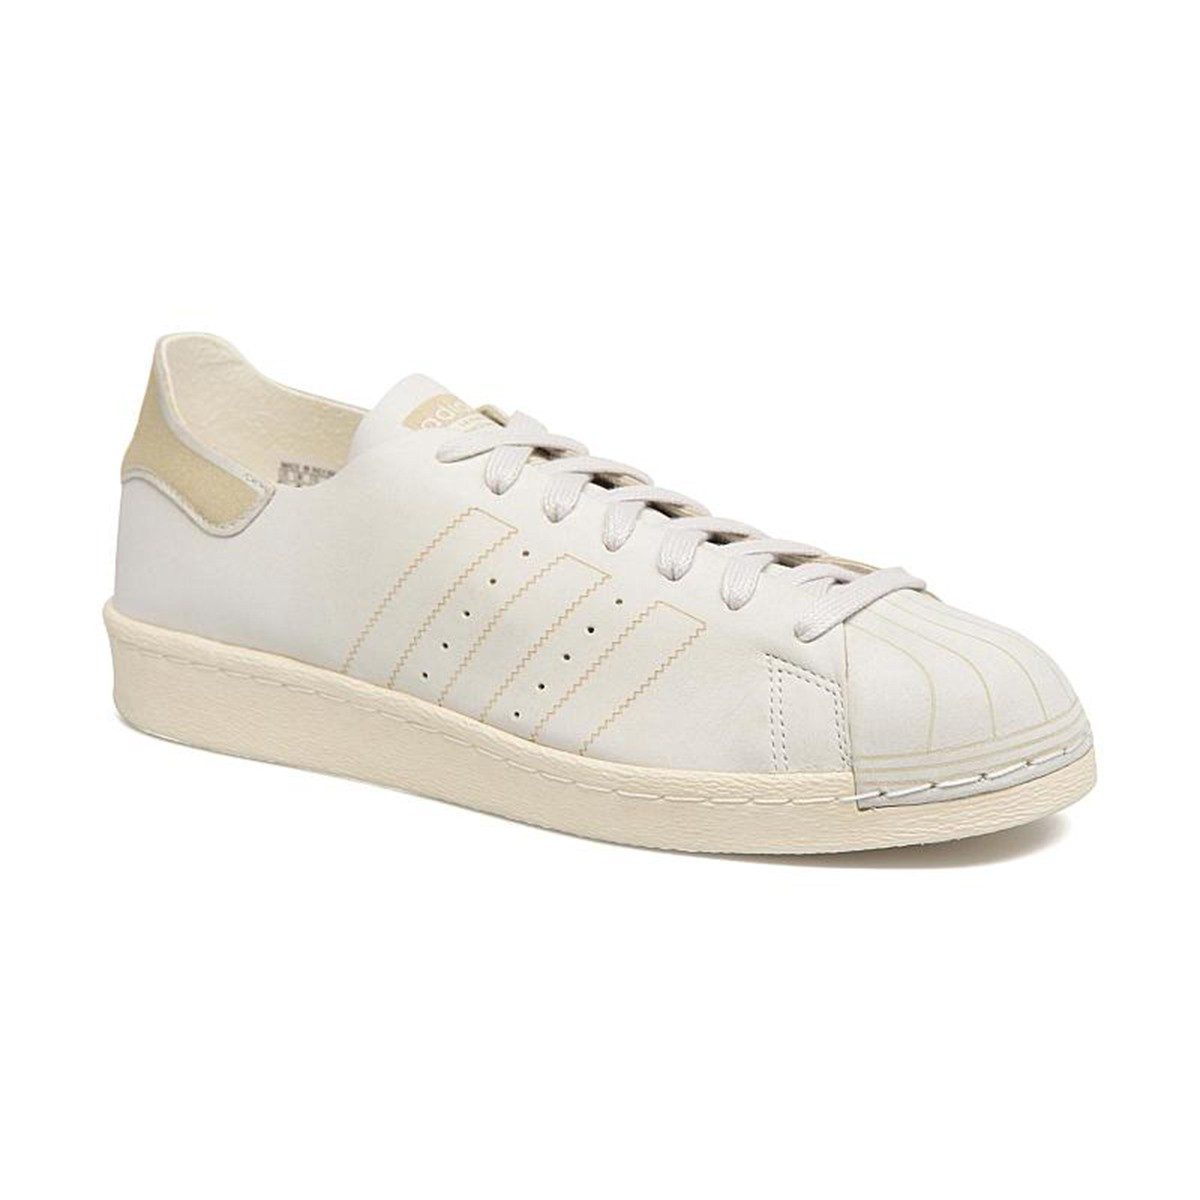 Scarpe uomo sneakers ADIDAS SUPERSTAR 80S DECON in pelle bianca CQ2210